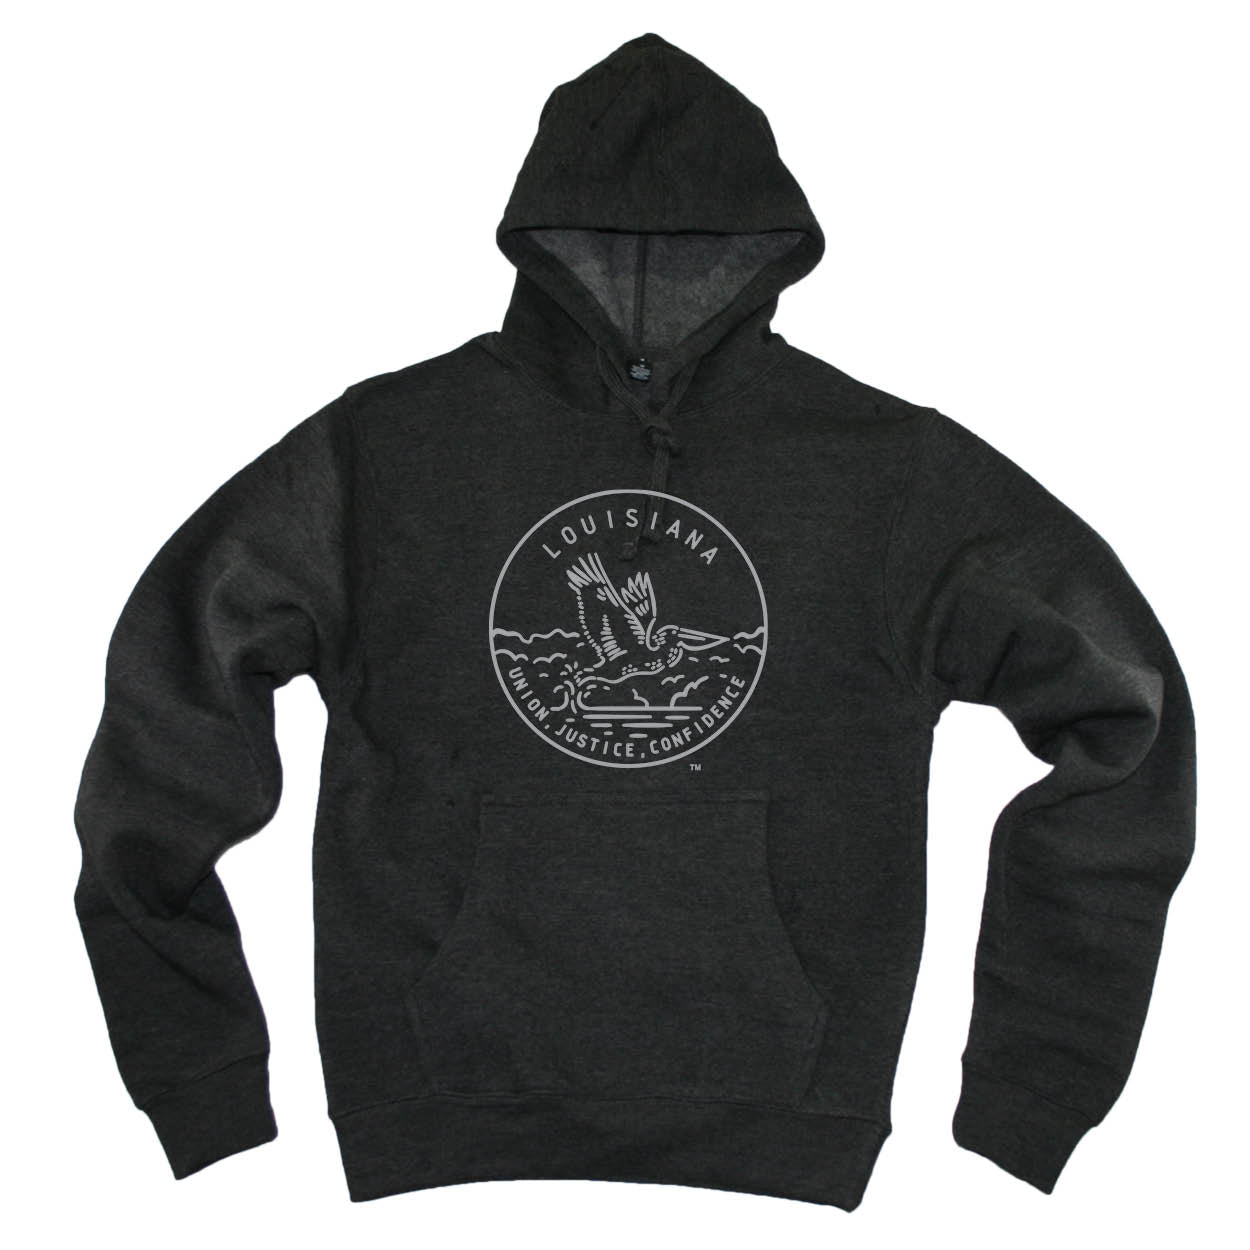 LOUISIANA HOODIE | STATE SEAL | UNION, JUSTICE, CONFIDENCE